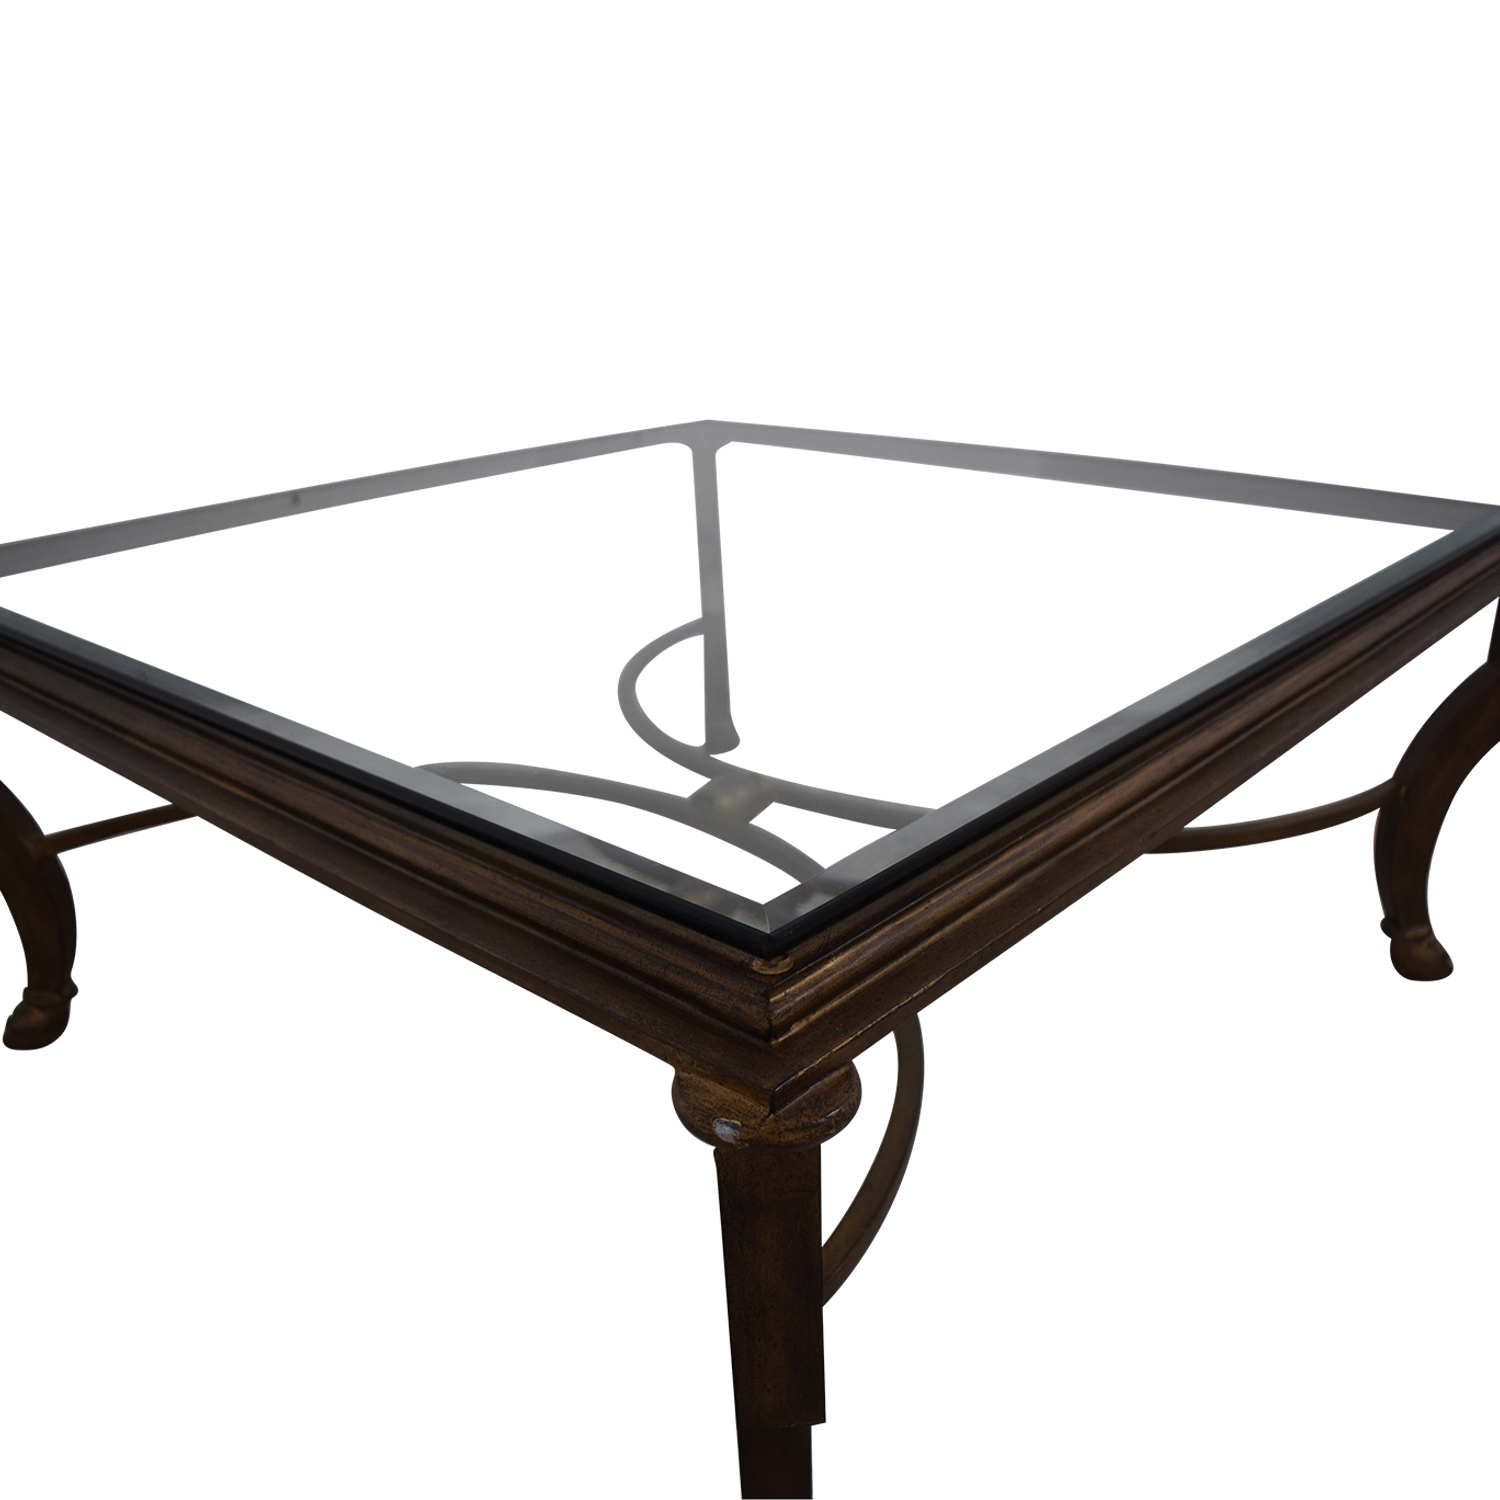 Kravet Kravet Glass Coffee Table dimensions